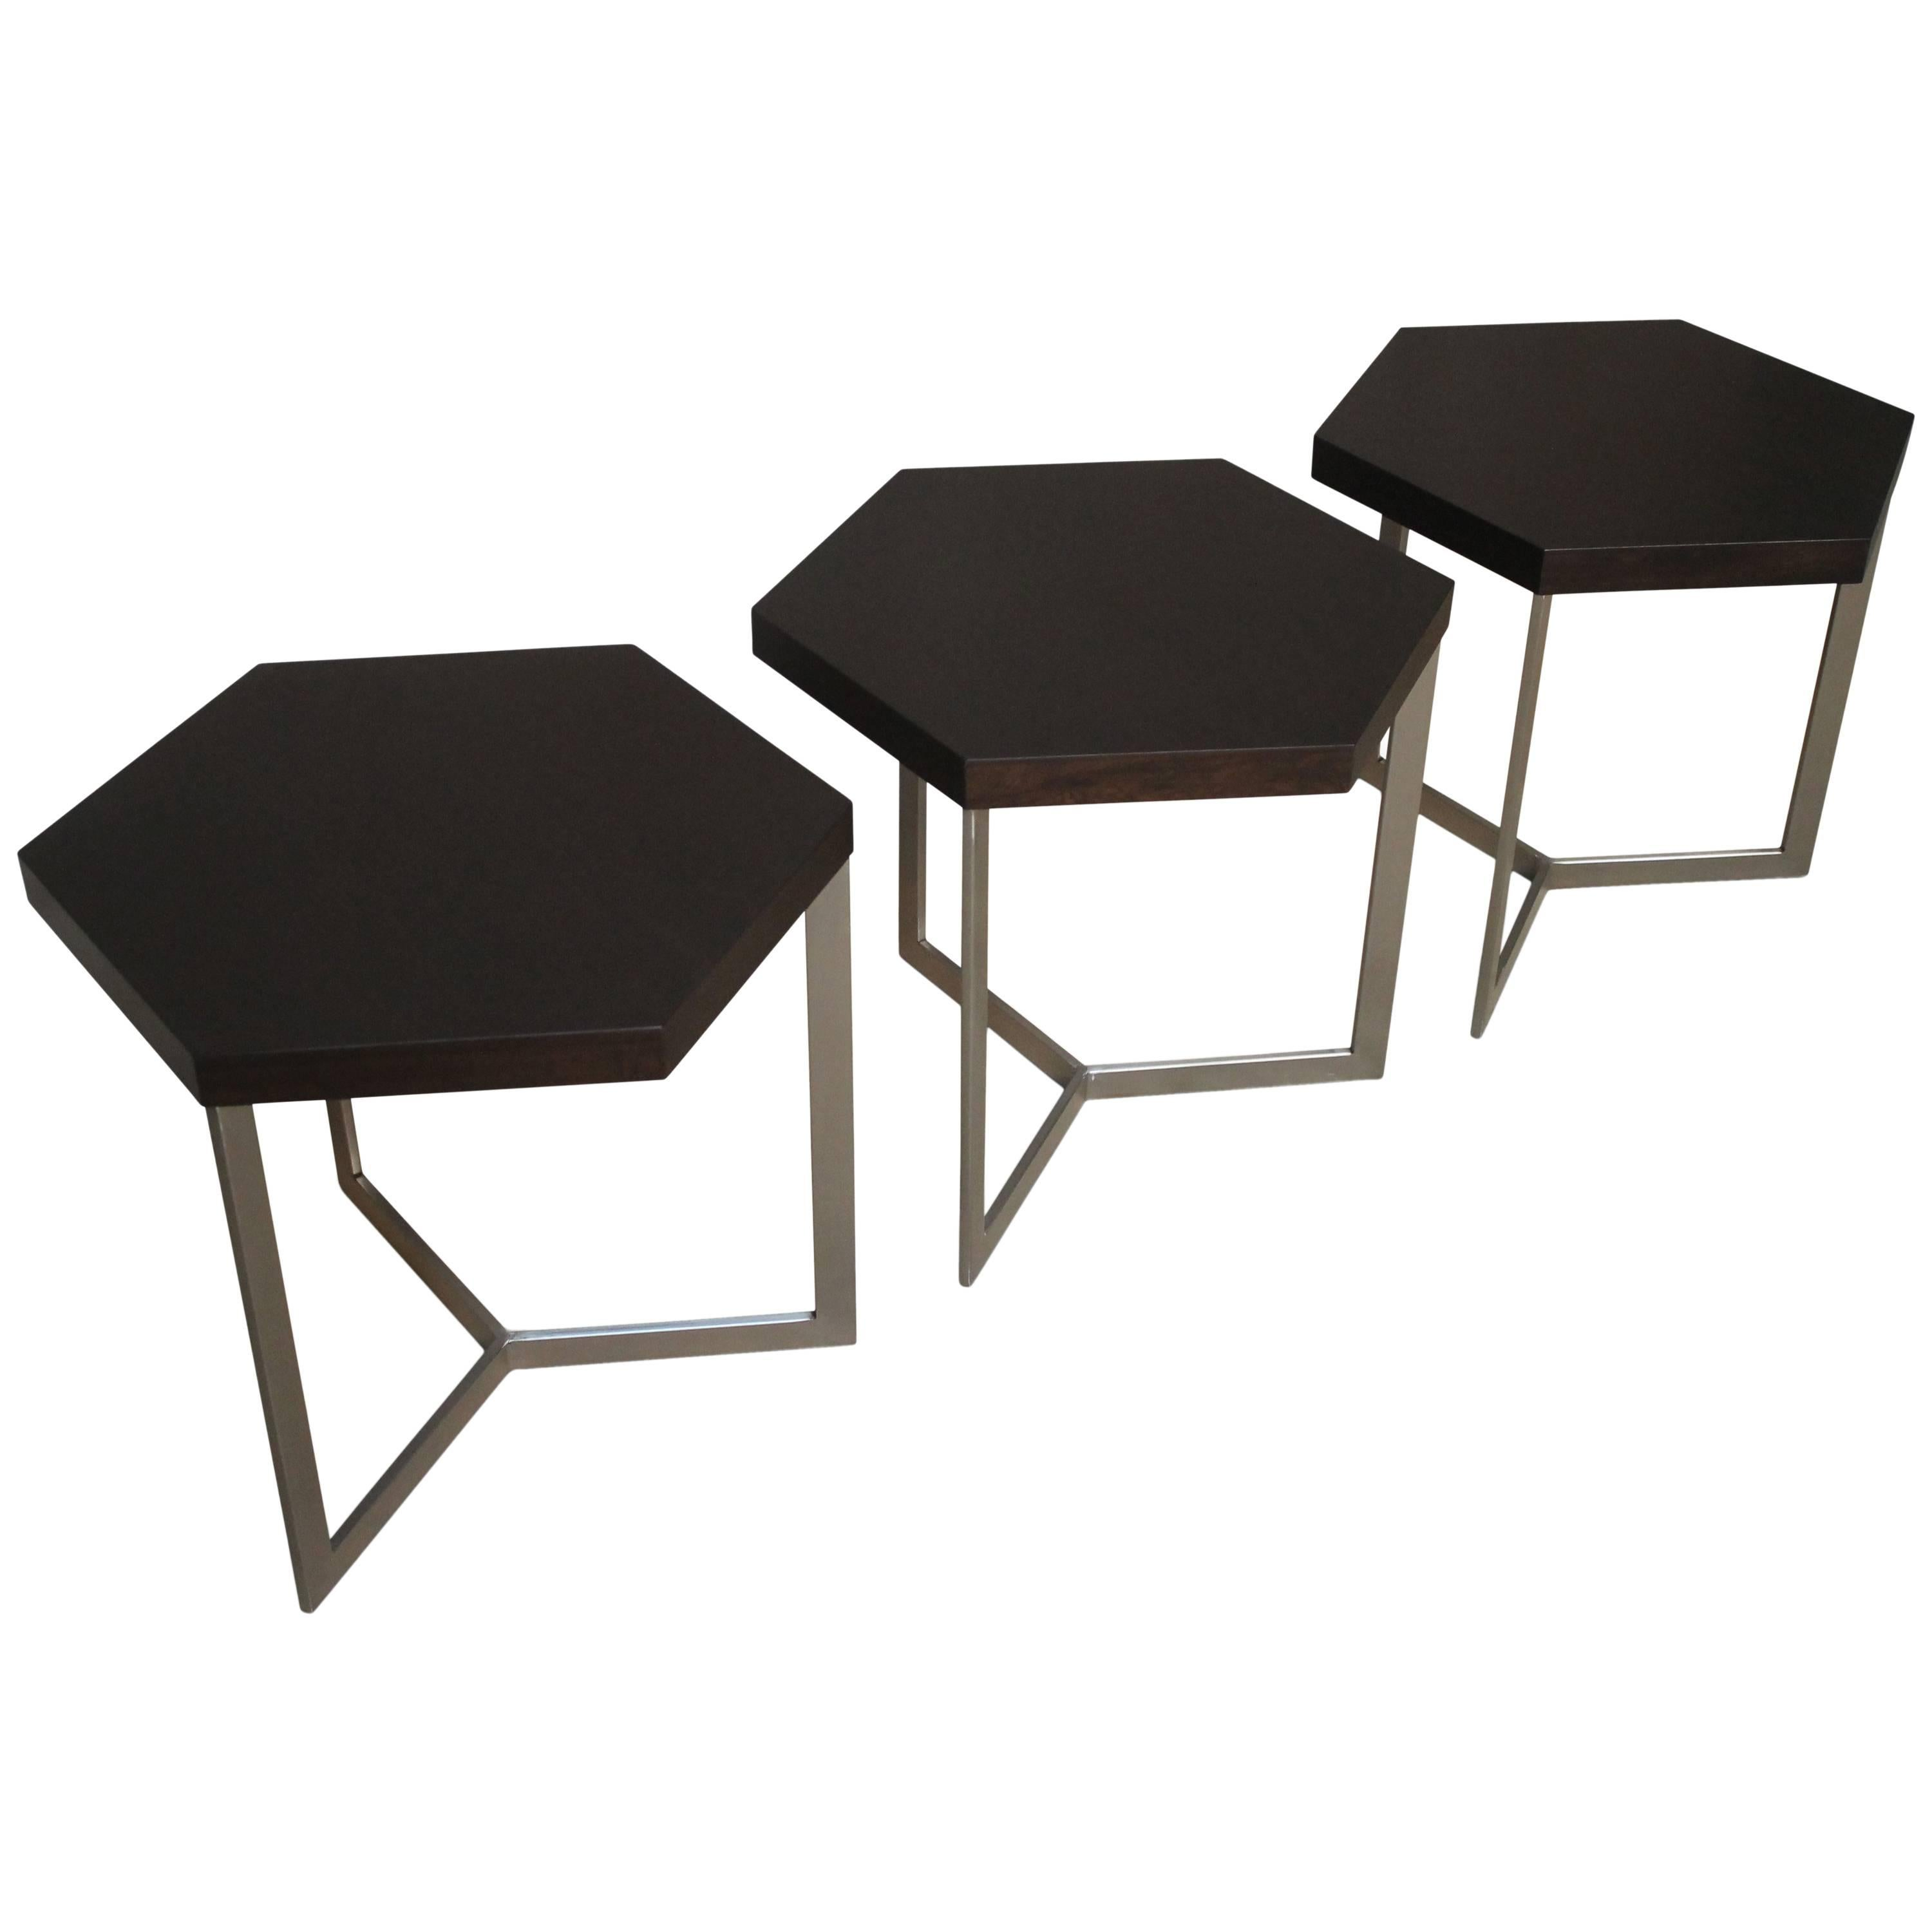 Modern Hexagonal Side Table in Steel and Rosewood from Costantini, Nicoli